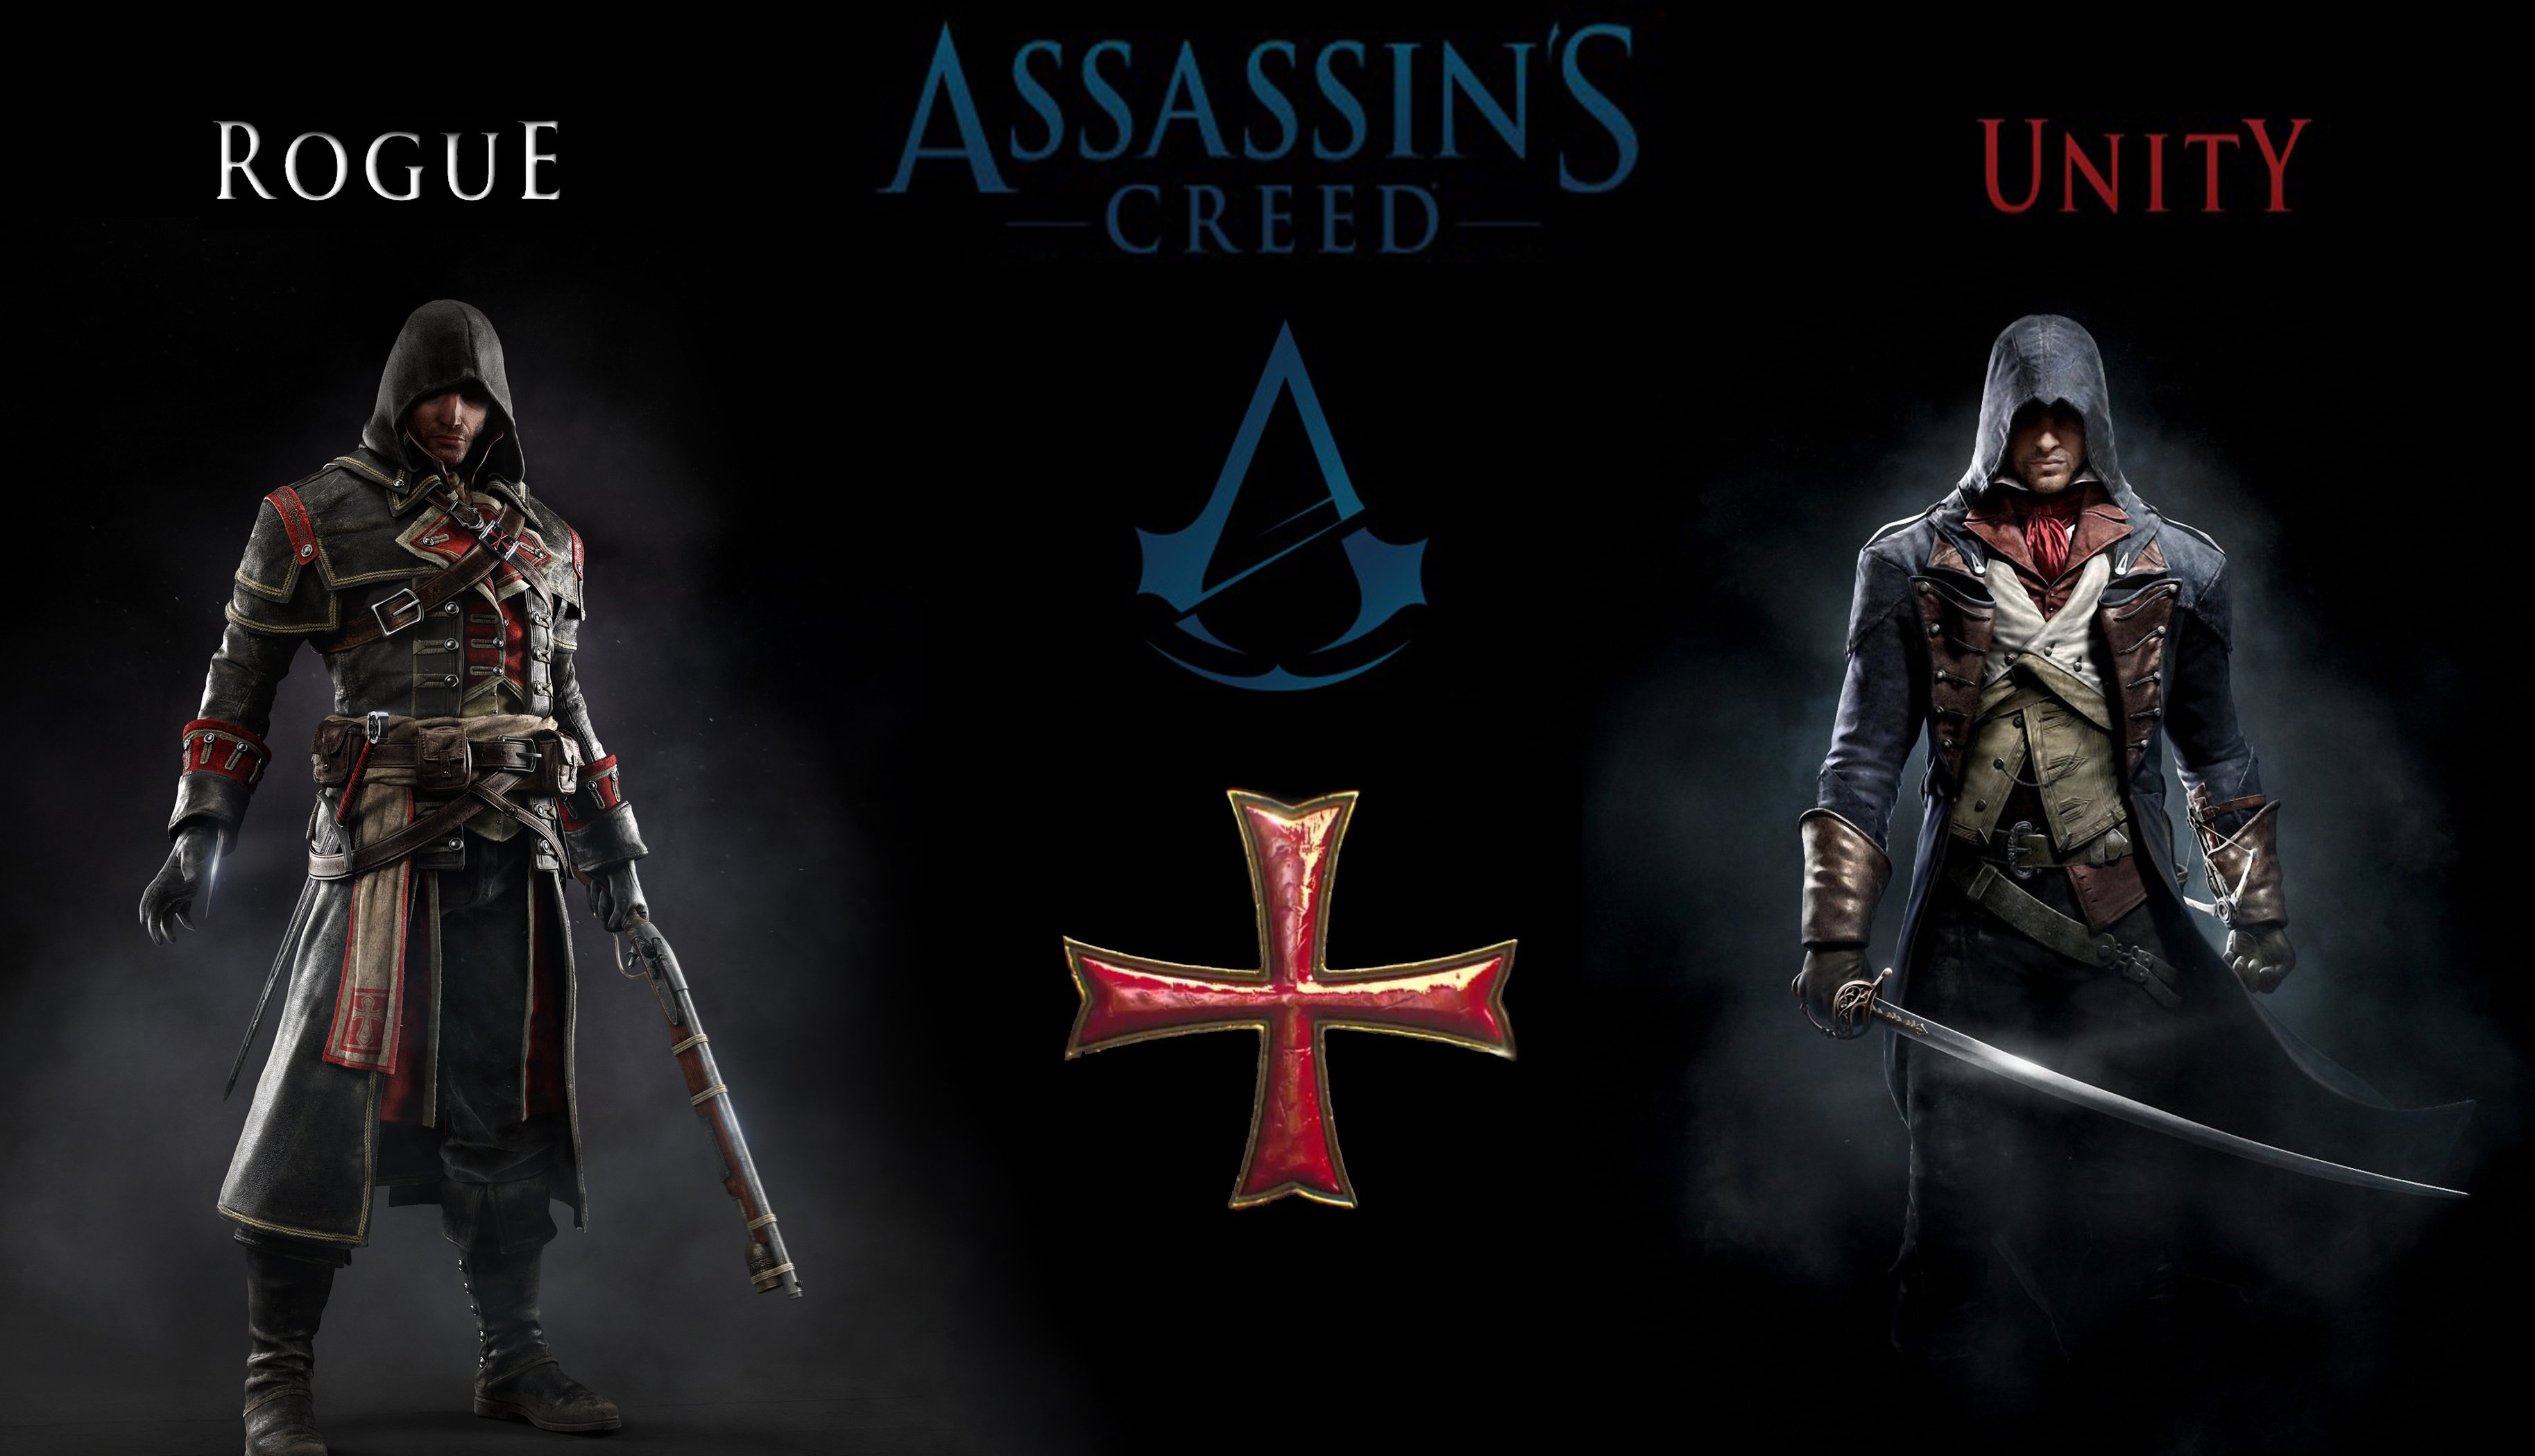 AC Unity Rough Full HD Wallpaper And Background Image